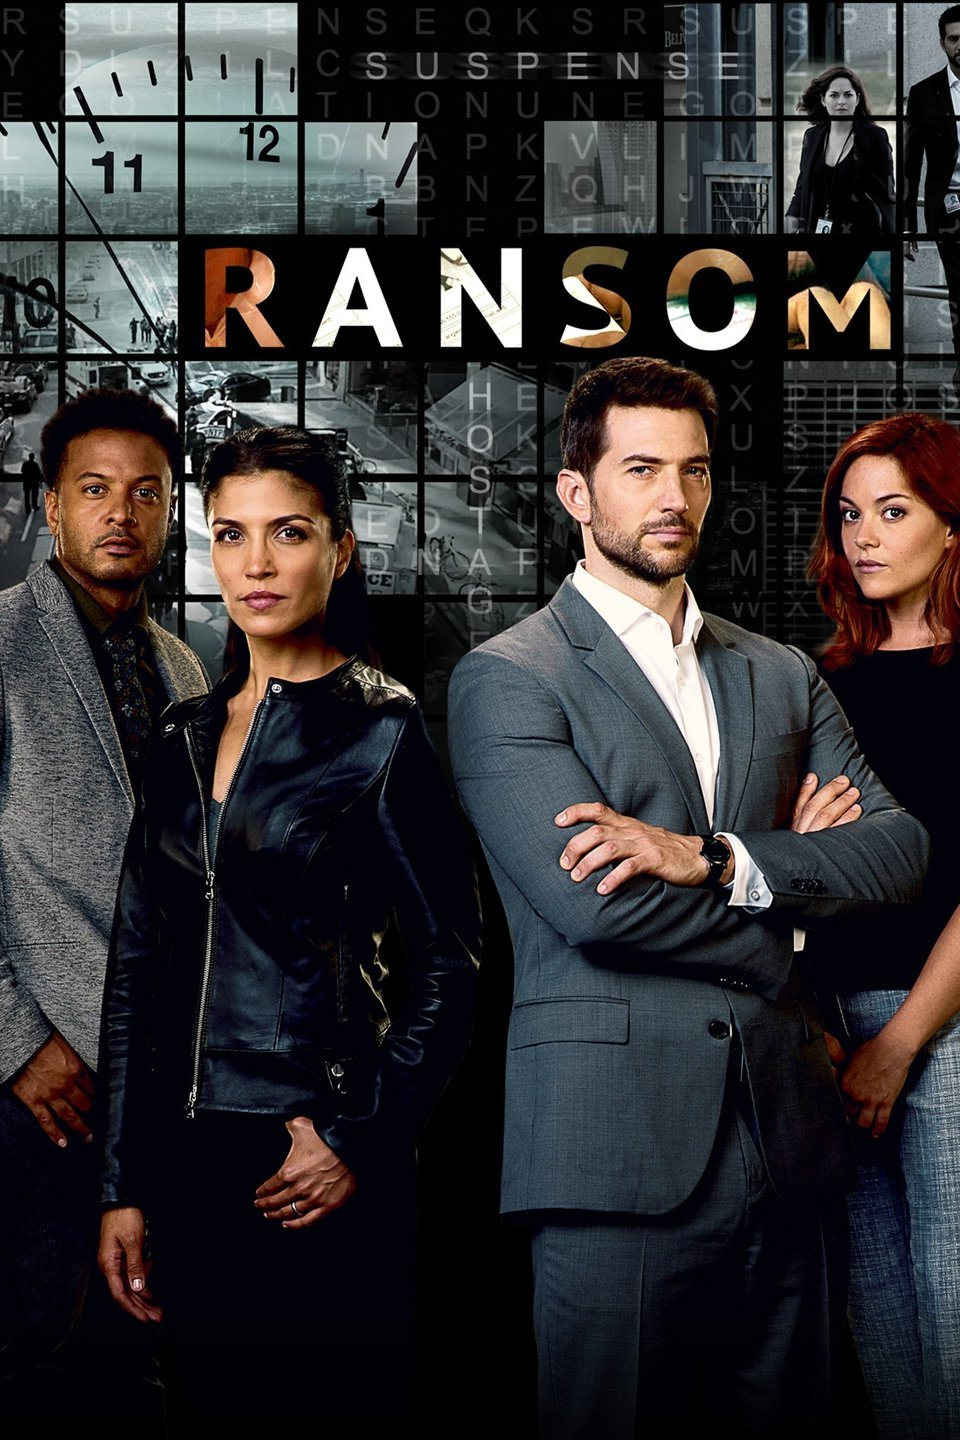 Ransom Season 2 Episode 3 Download WEBRip 480p 720p